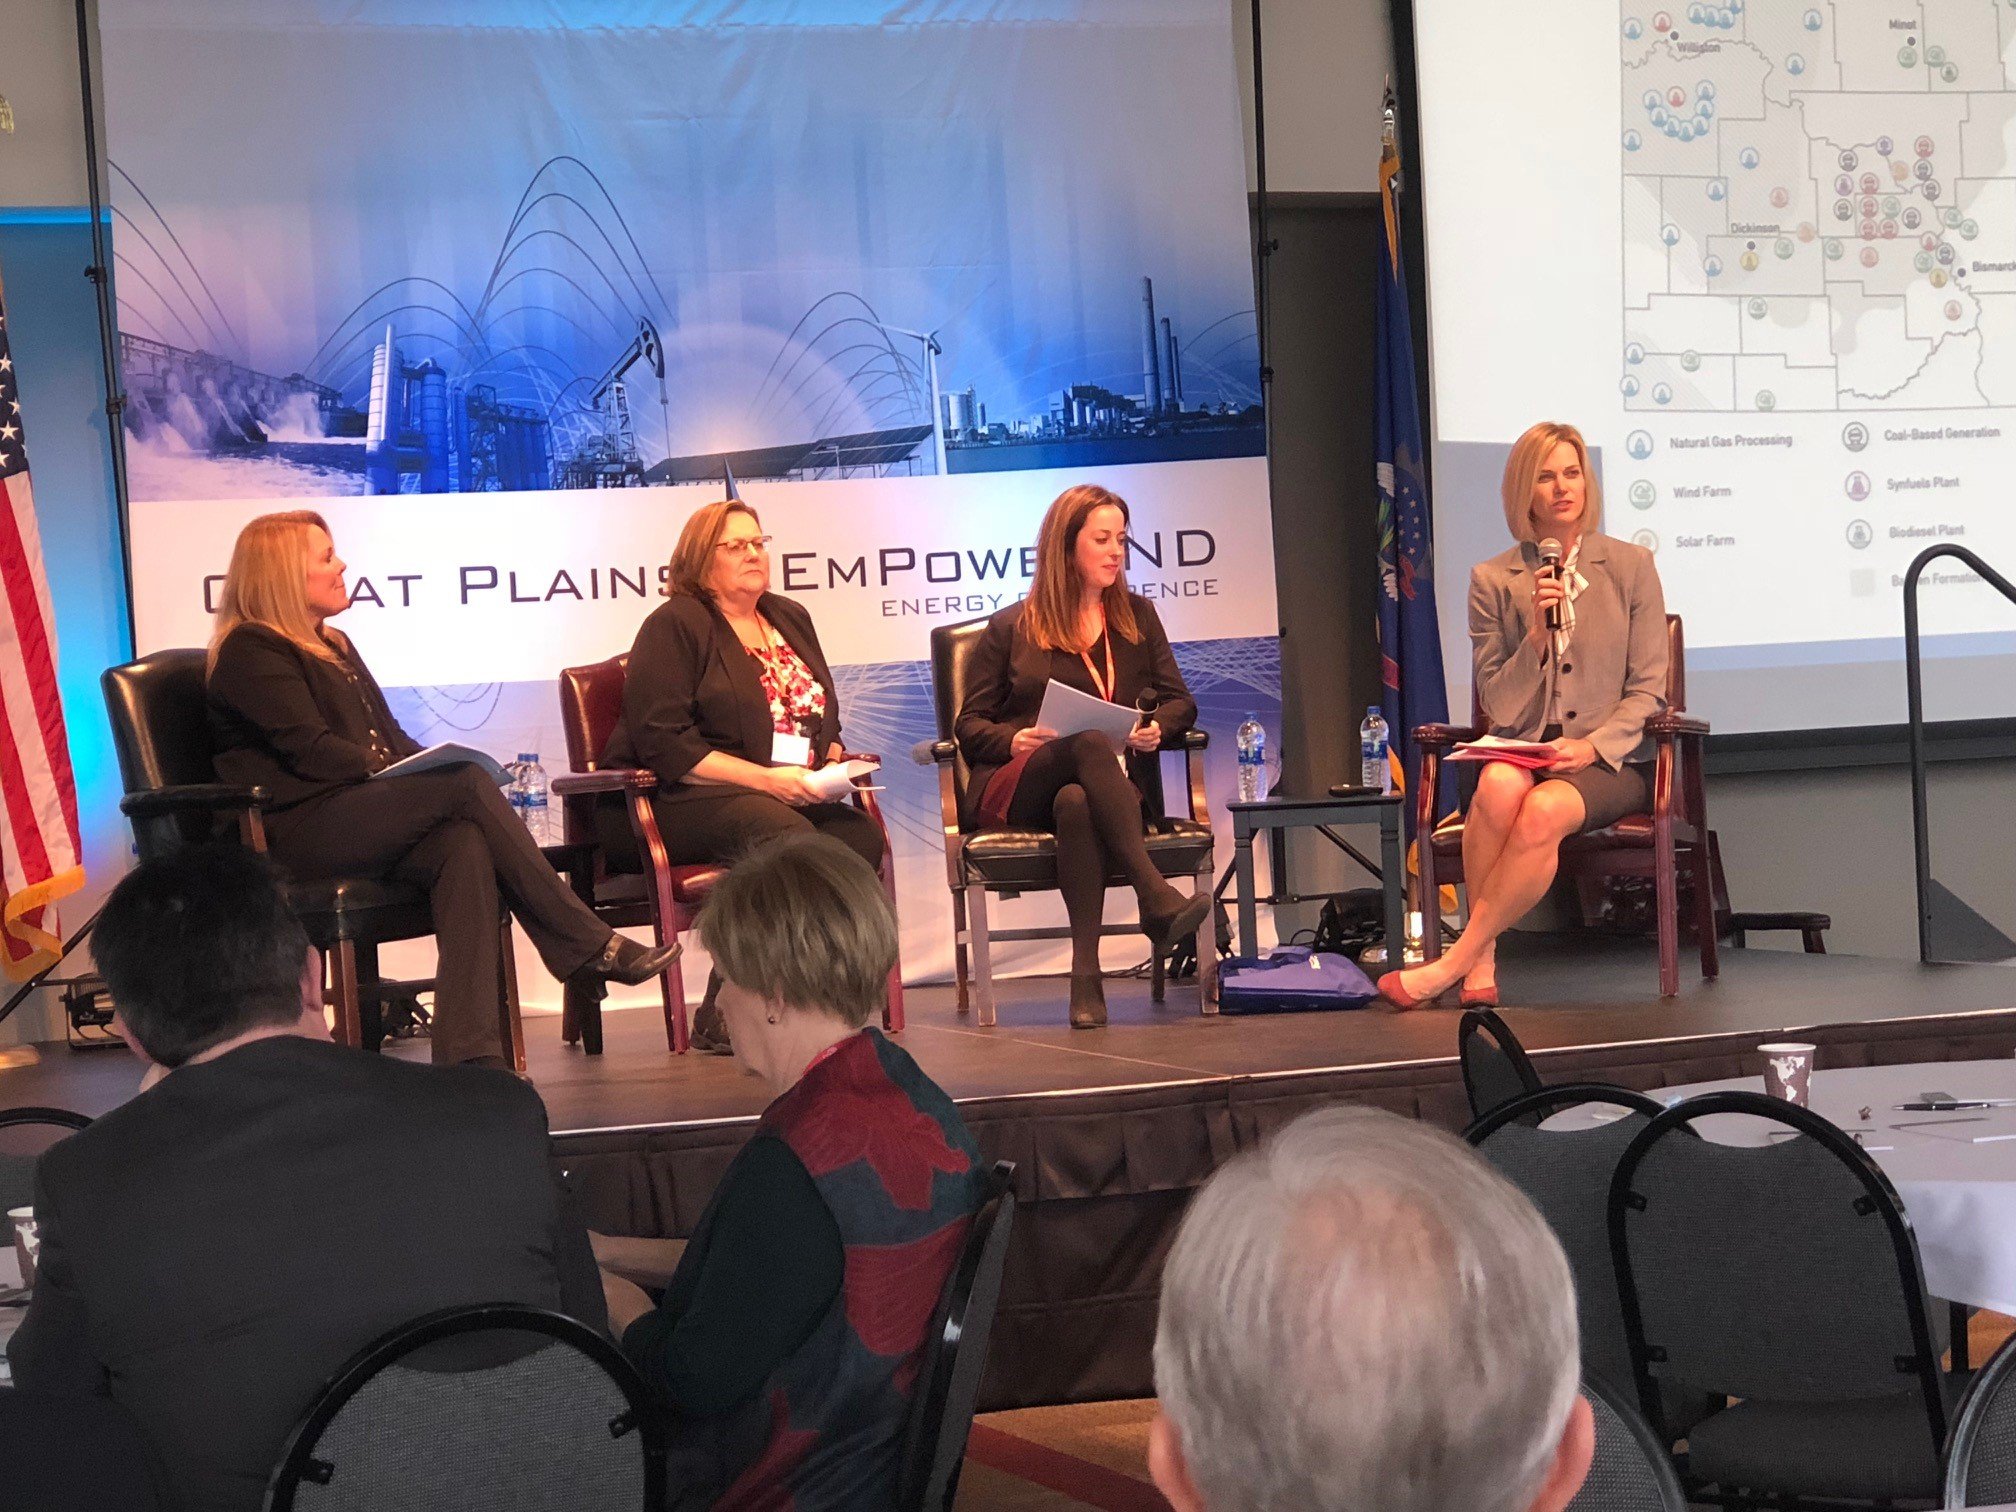 Comm. Fedorchak Hosts Panel at Empower ND Energy Conference